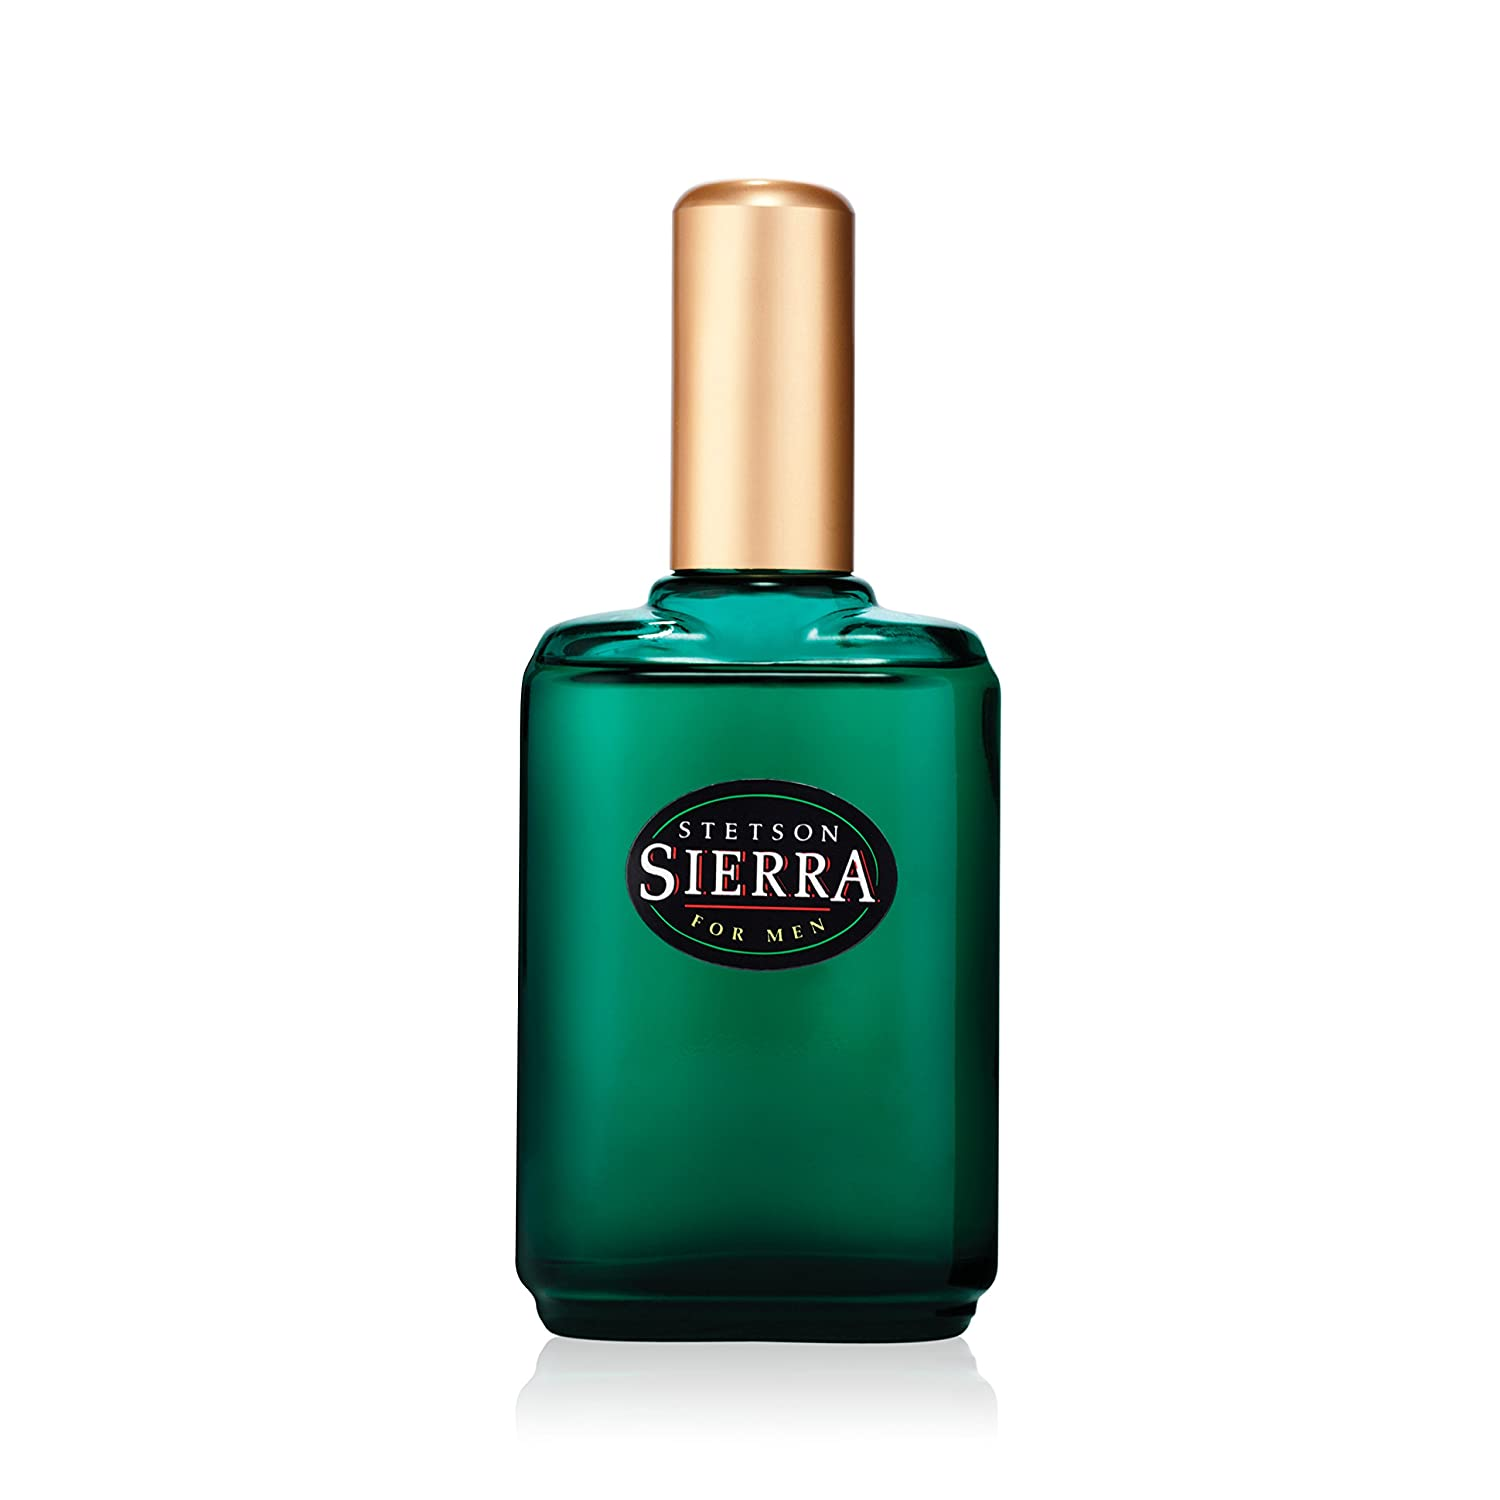 Stetson Sierra Cologne Spray by Stetson, 1.5 Fluid Ounce Coty Beauty Hazmat ST215M